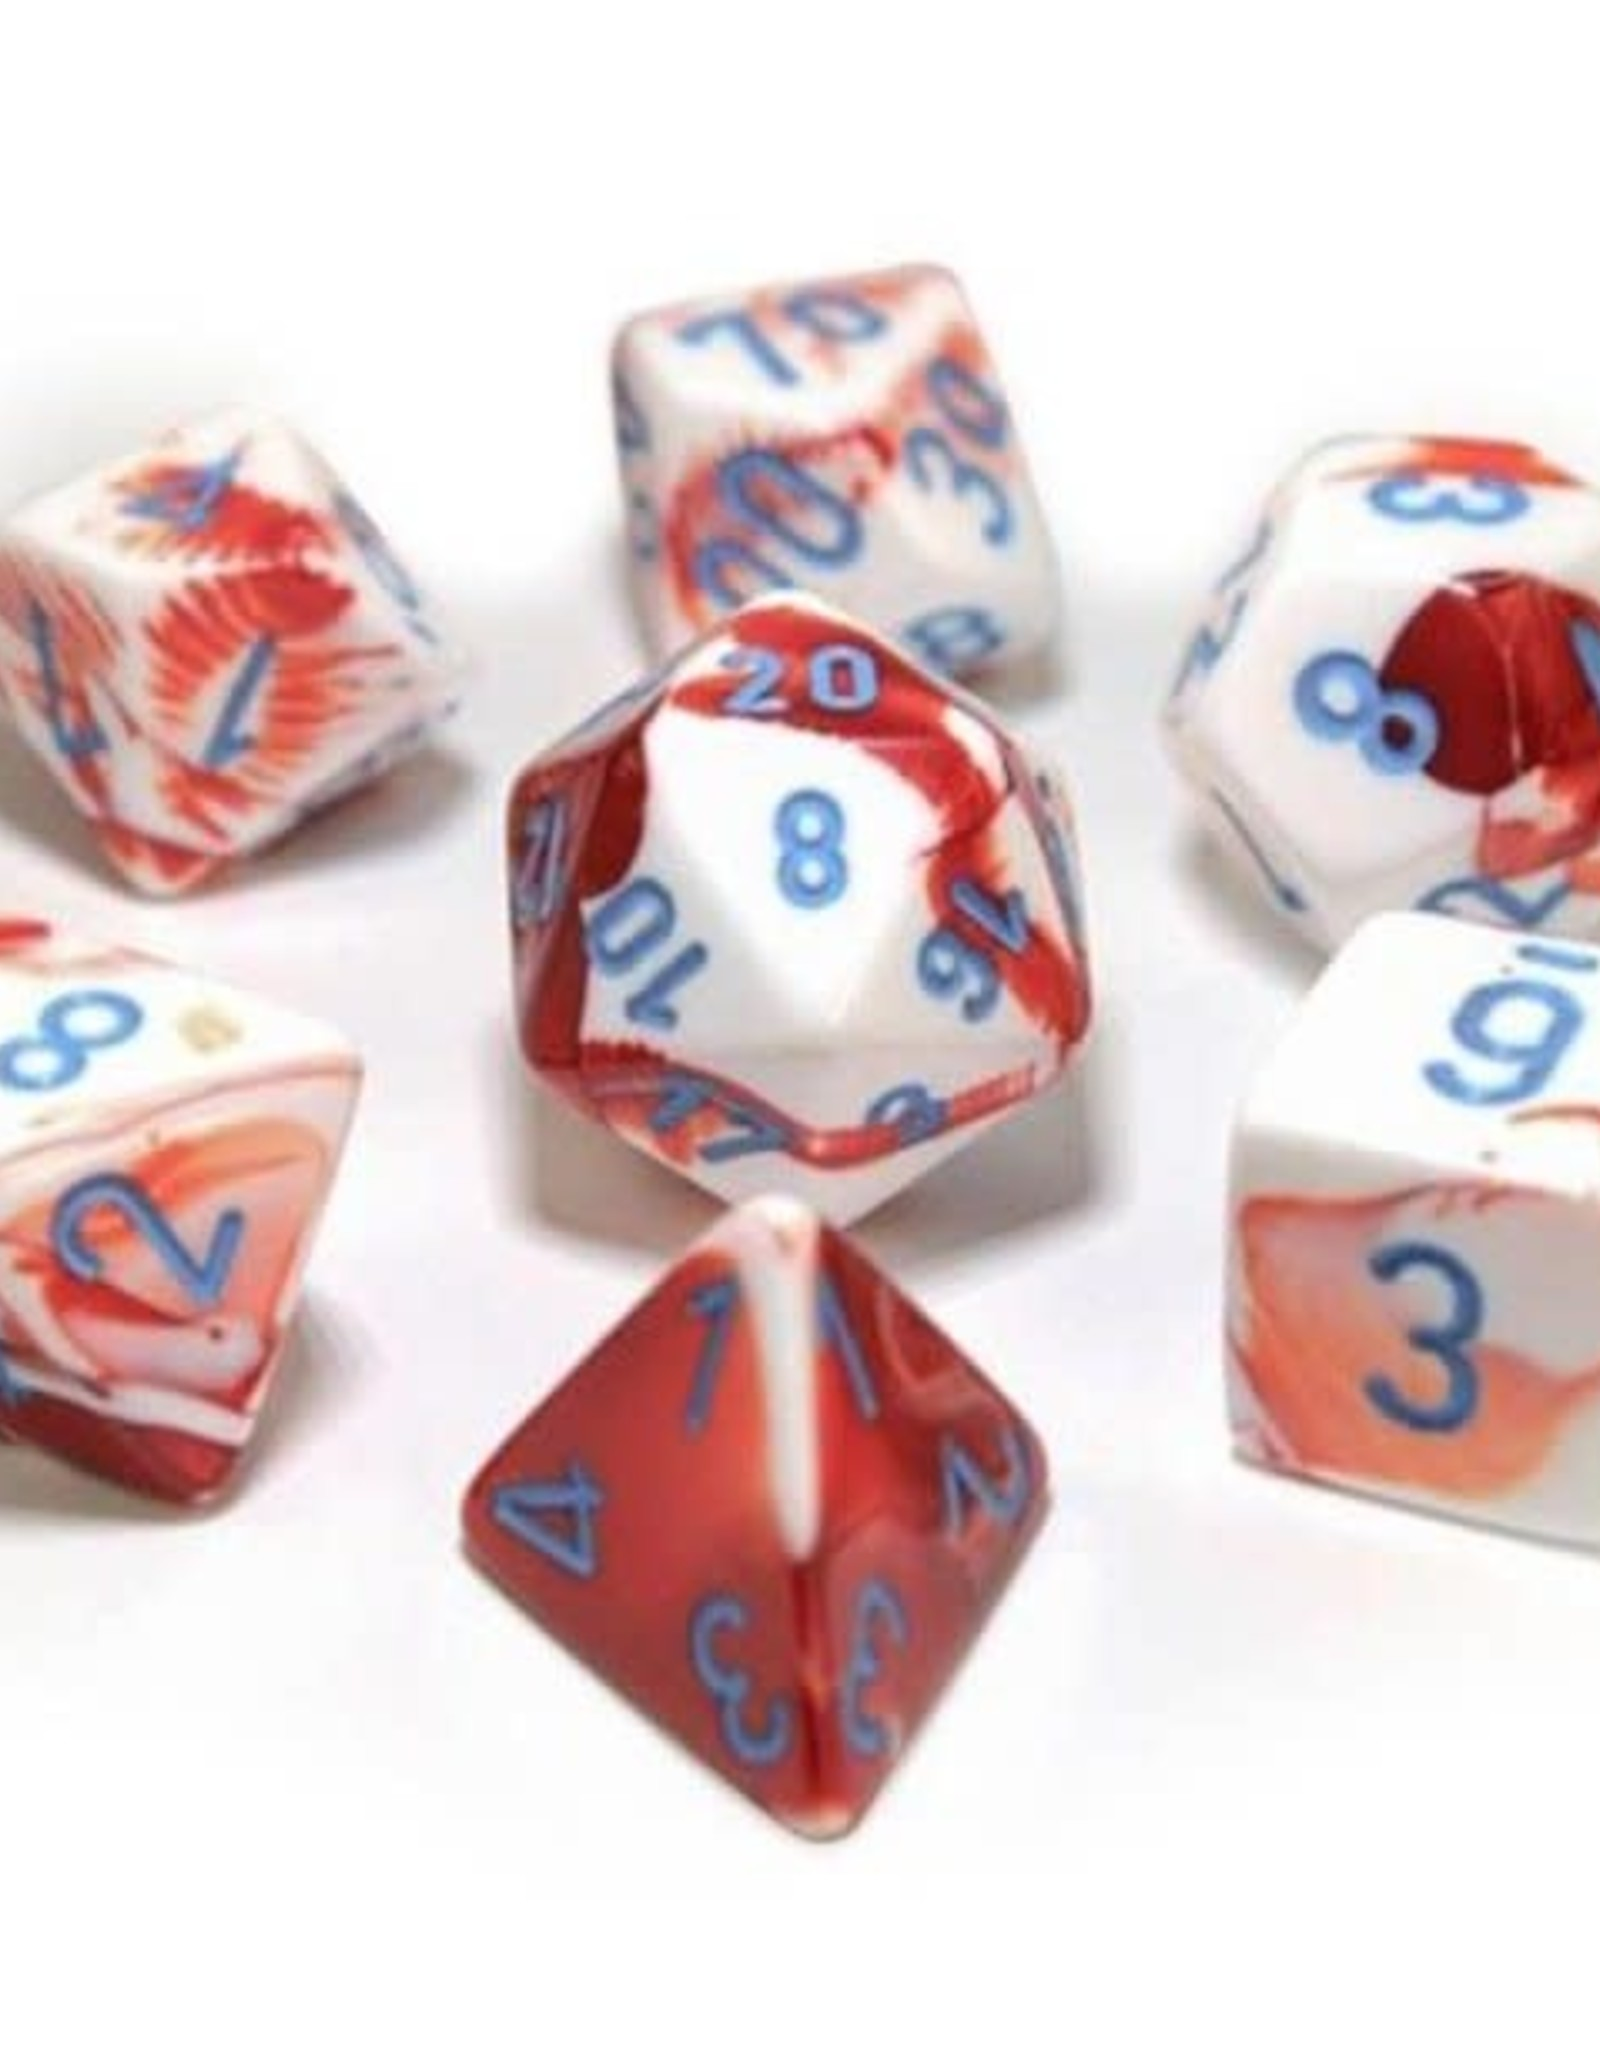 Chessex Chessex Manufacturing CHX30022 Cube Gemini Lab Dice - Red, White & Blue - Set of 7